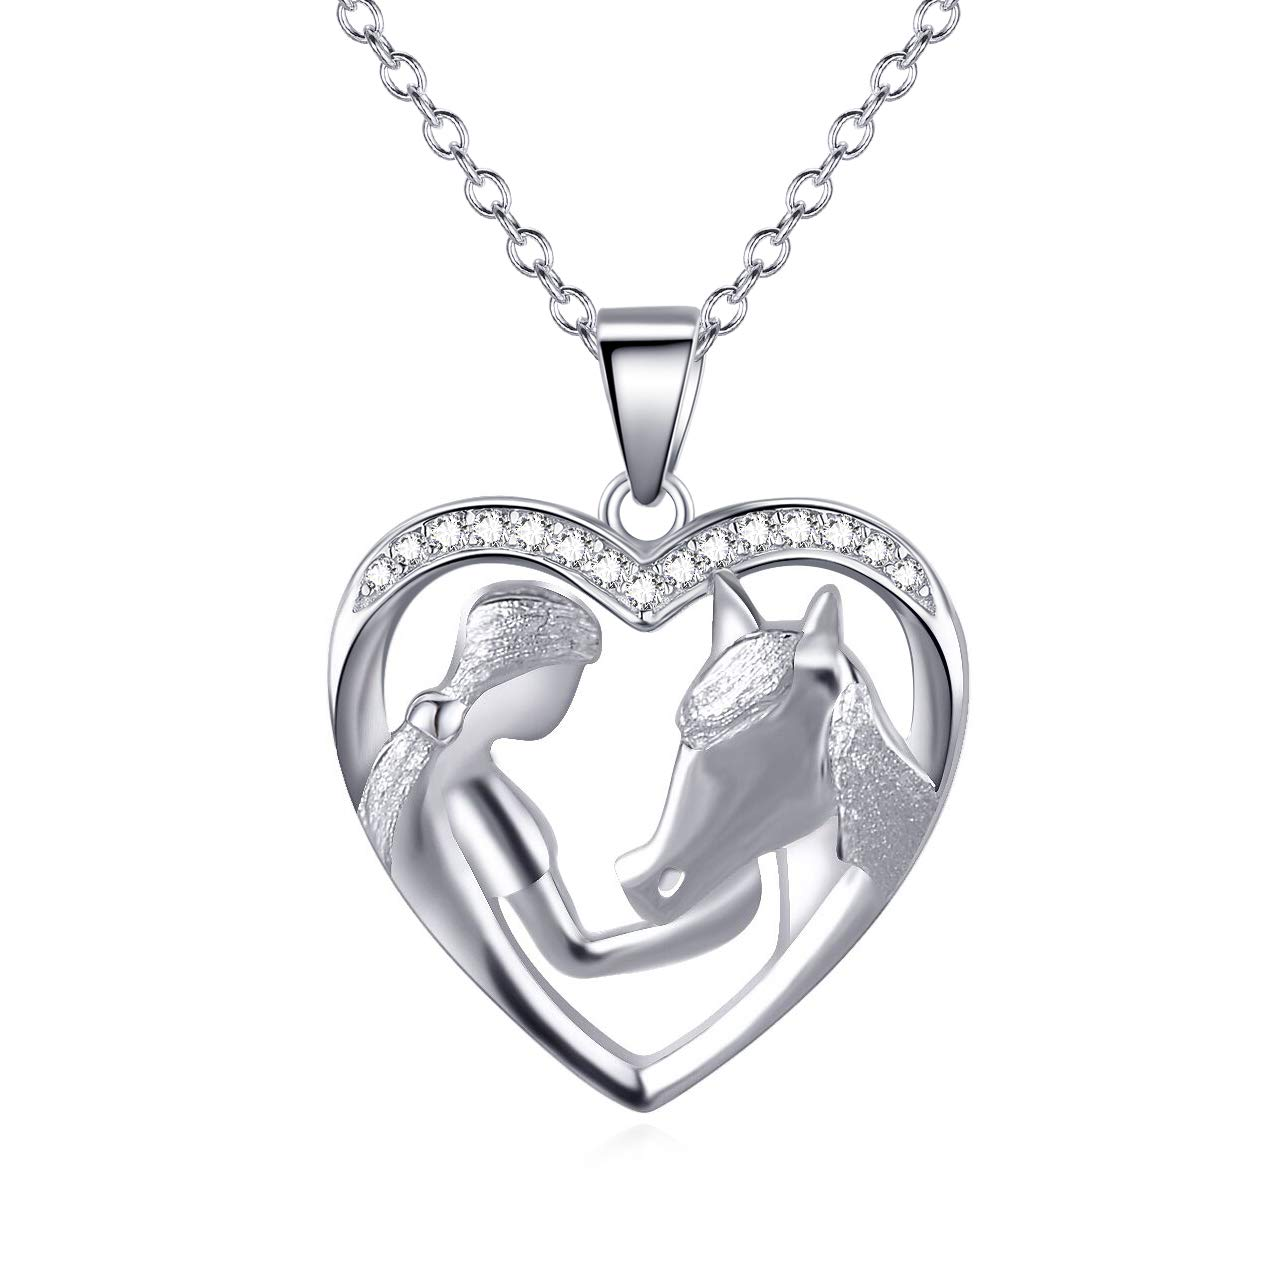 Jewelry for Women Horse Pendant Necklace Girl and Horse Heart Necklace 925 Sterling Silver Wolf Necklace with Unicorn Necklace Gifts for Women Chain 18 Gifts Box